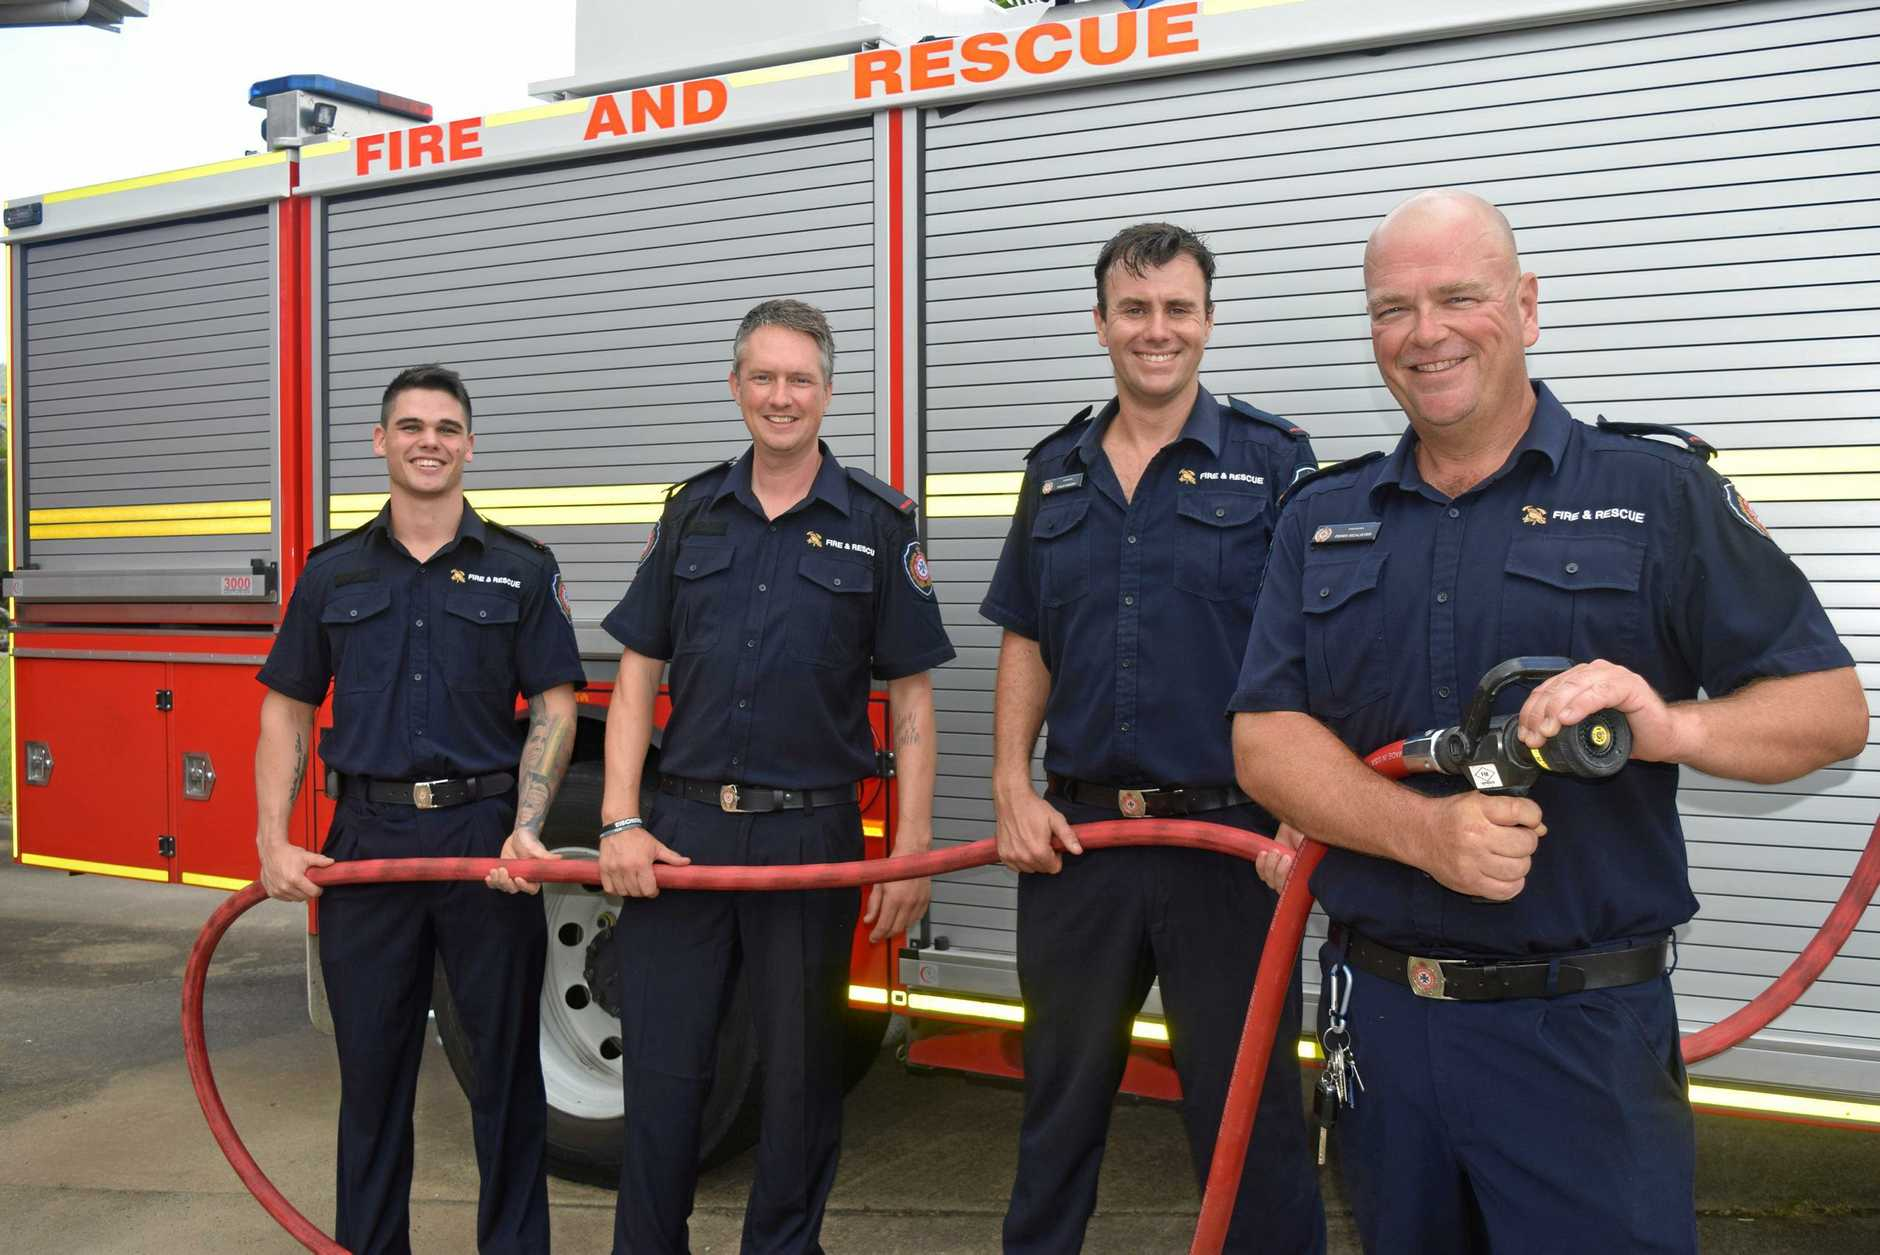 Airlie Beach firefighters Kyle McCormack, Kevin Stokes, Phil Hendry and Derek McAlister are ready for the fire station's open day on February 23.